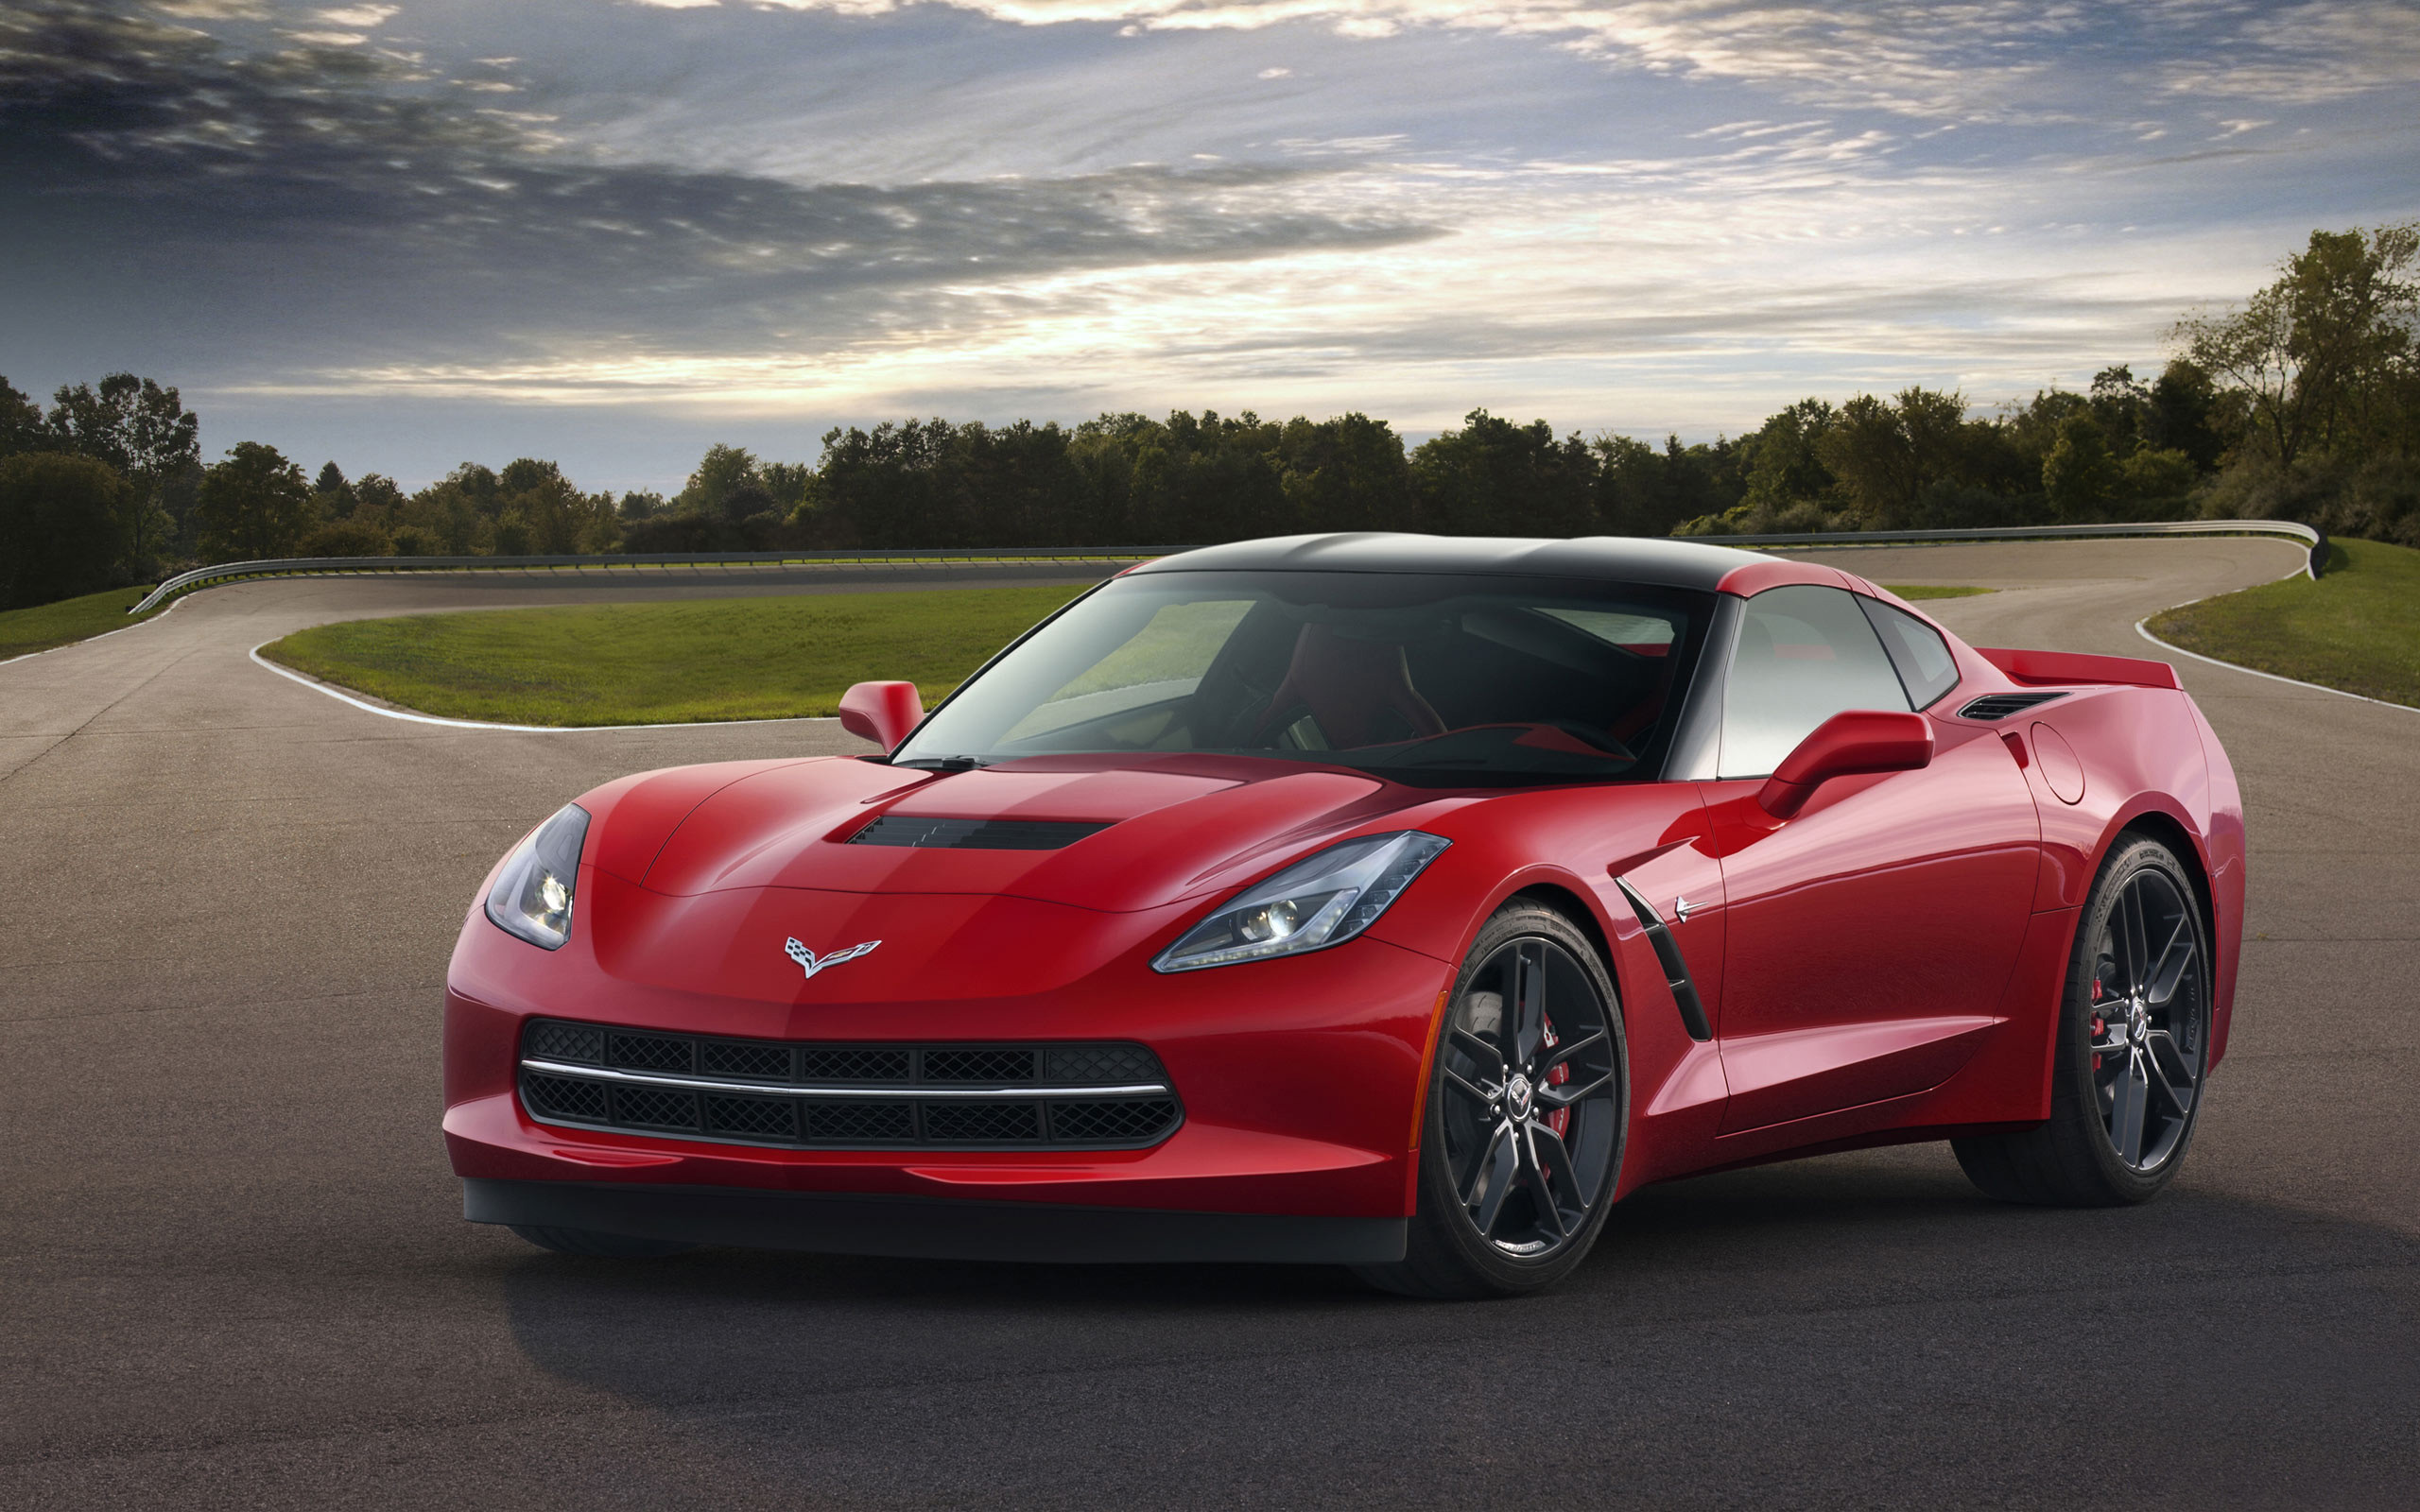 2560x1600 2014 Chevrolet Corvette C7 Stingray